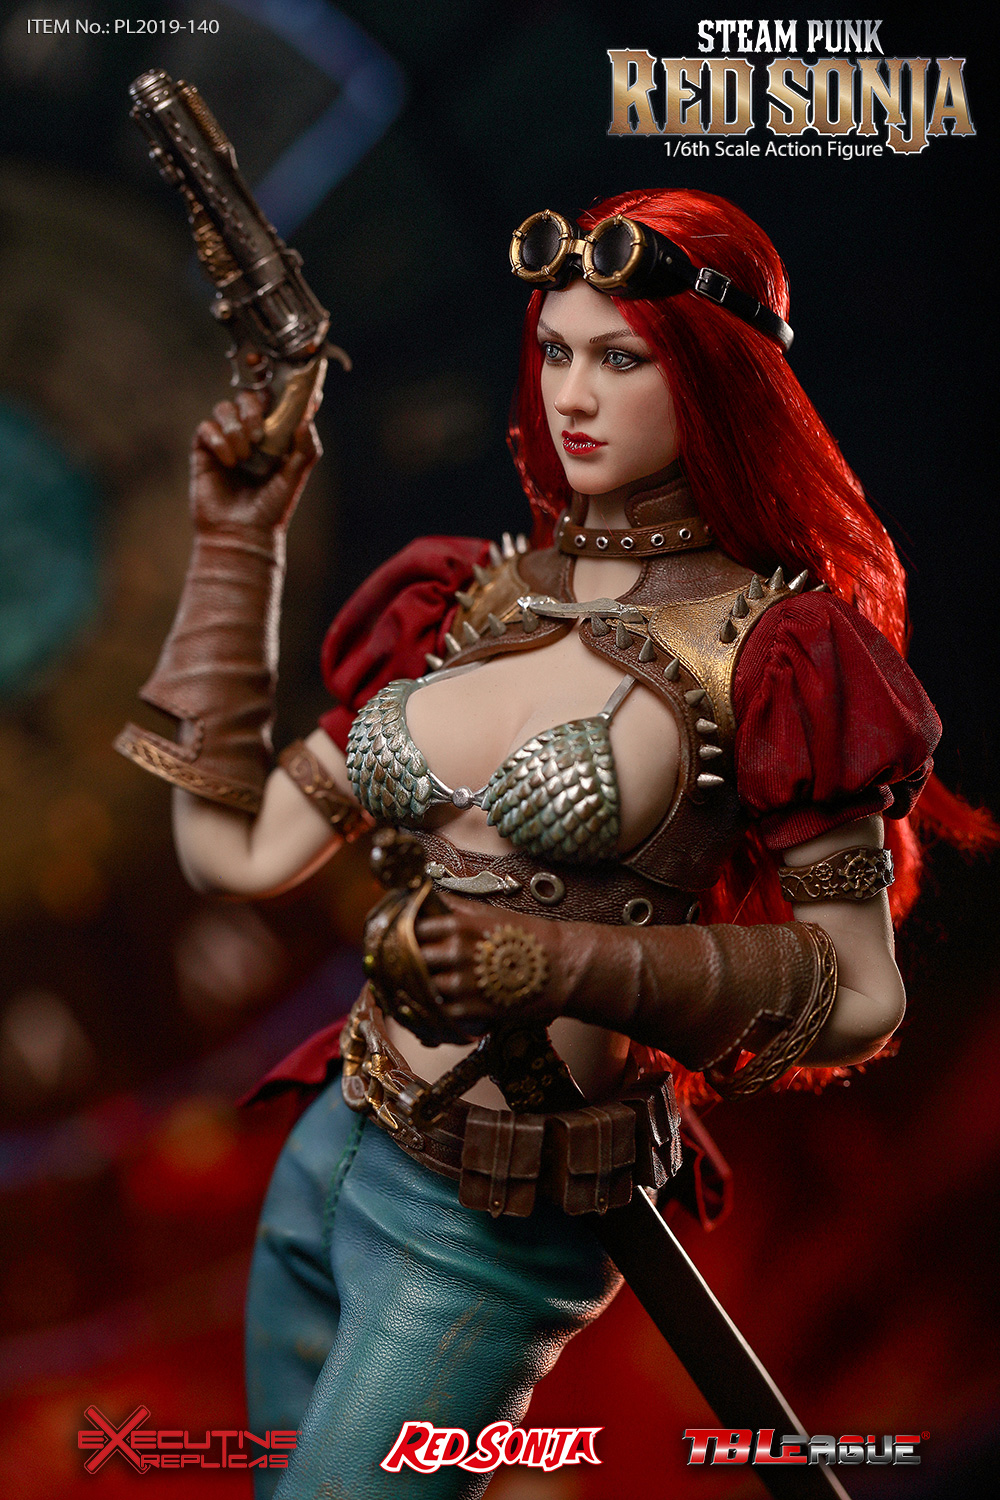 steampunk - NEW PRODUCT: TBLeague: 1/6 Steam Punk - Red Sonja / Queen Excalibur [punk version] PL2019-140-A/B 20192510